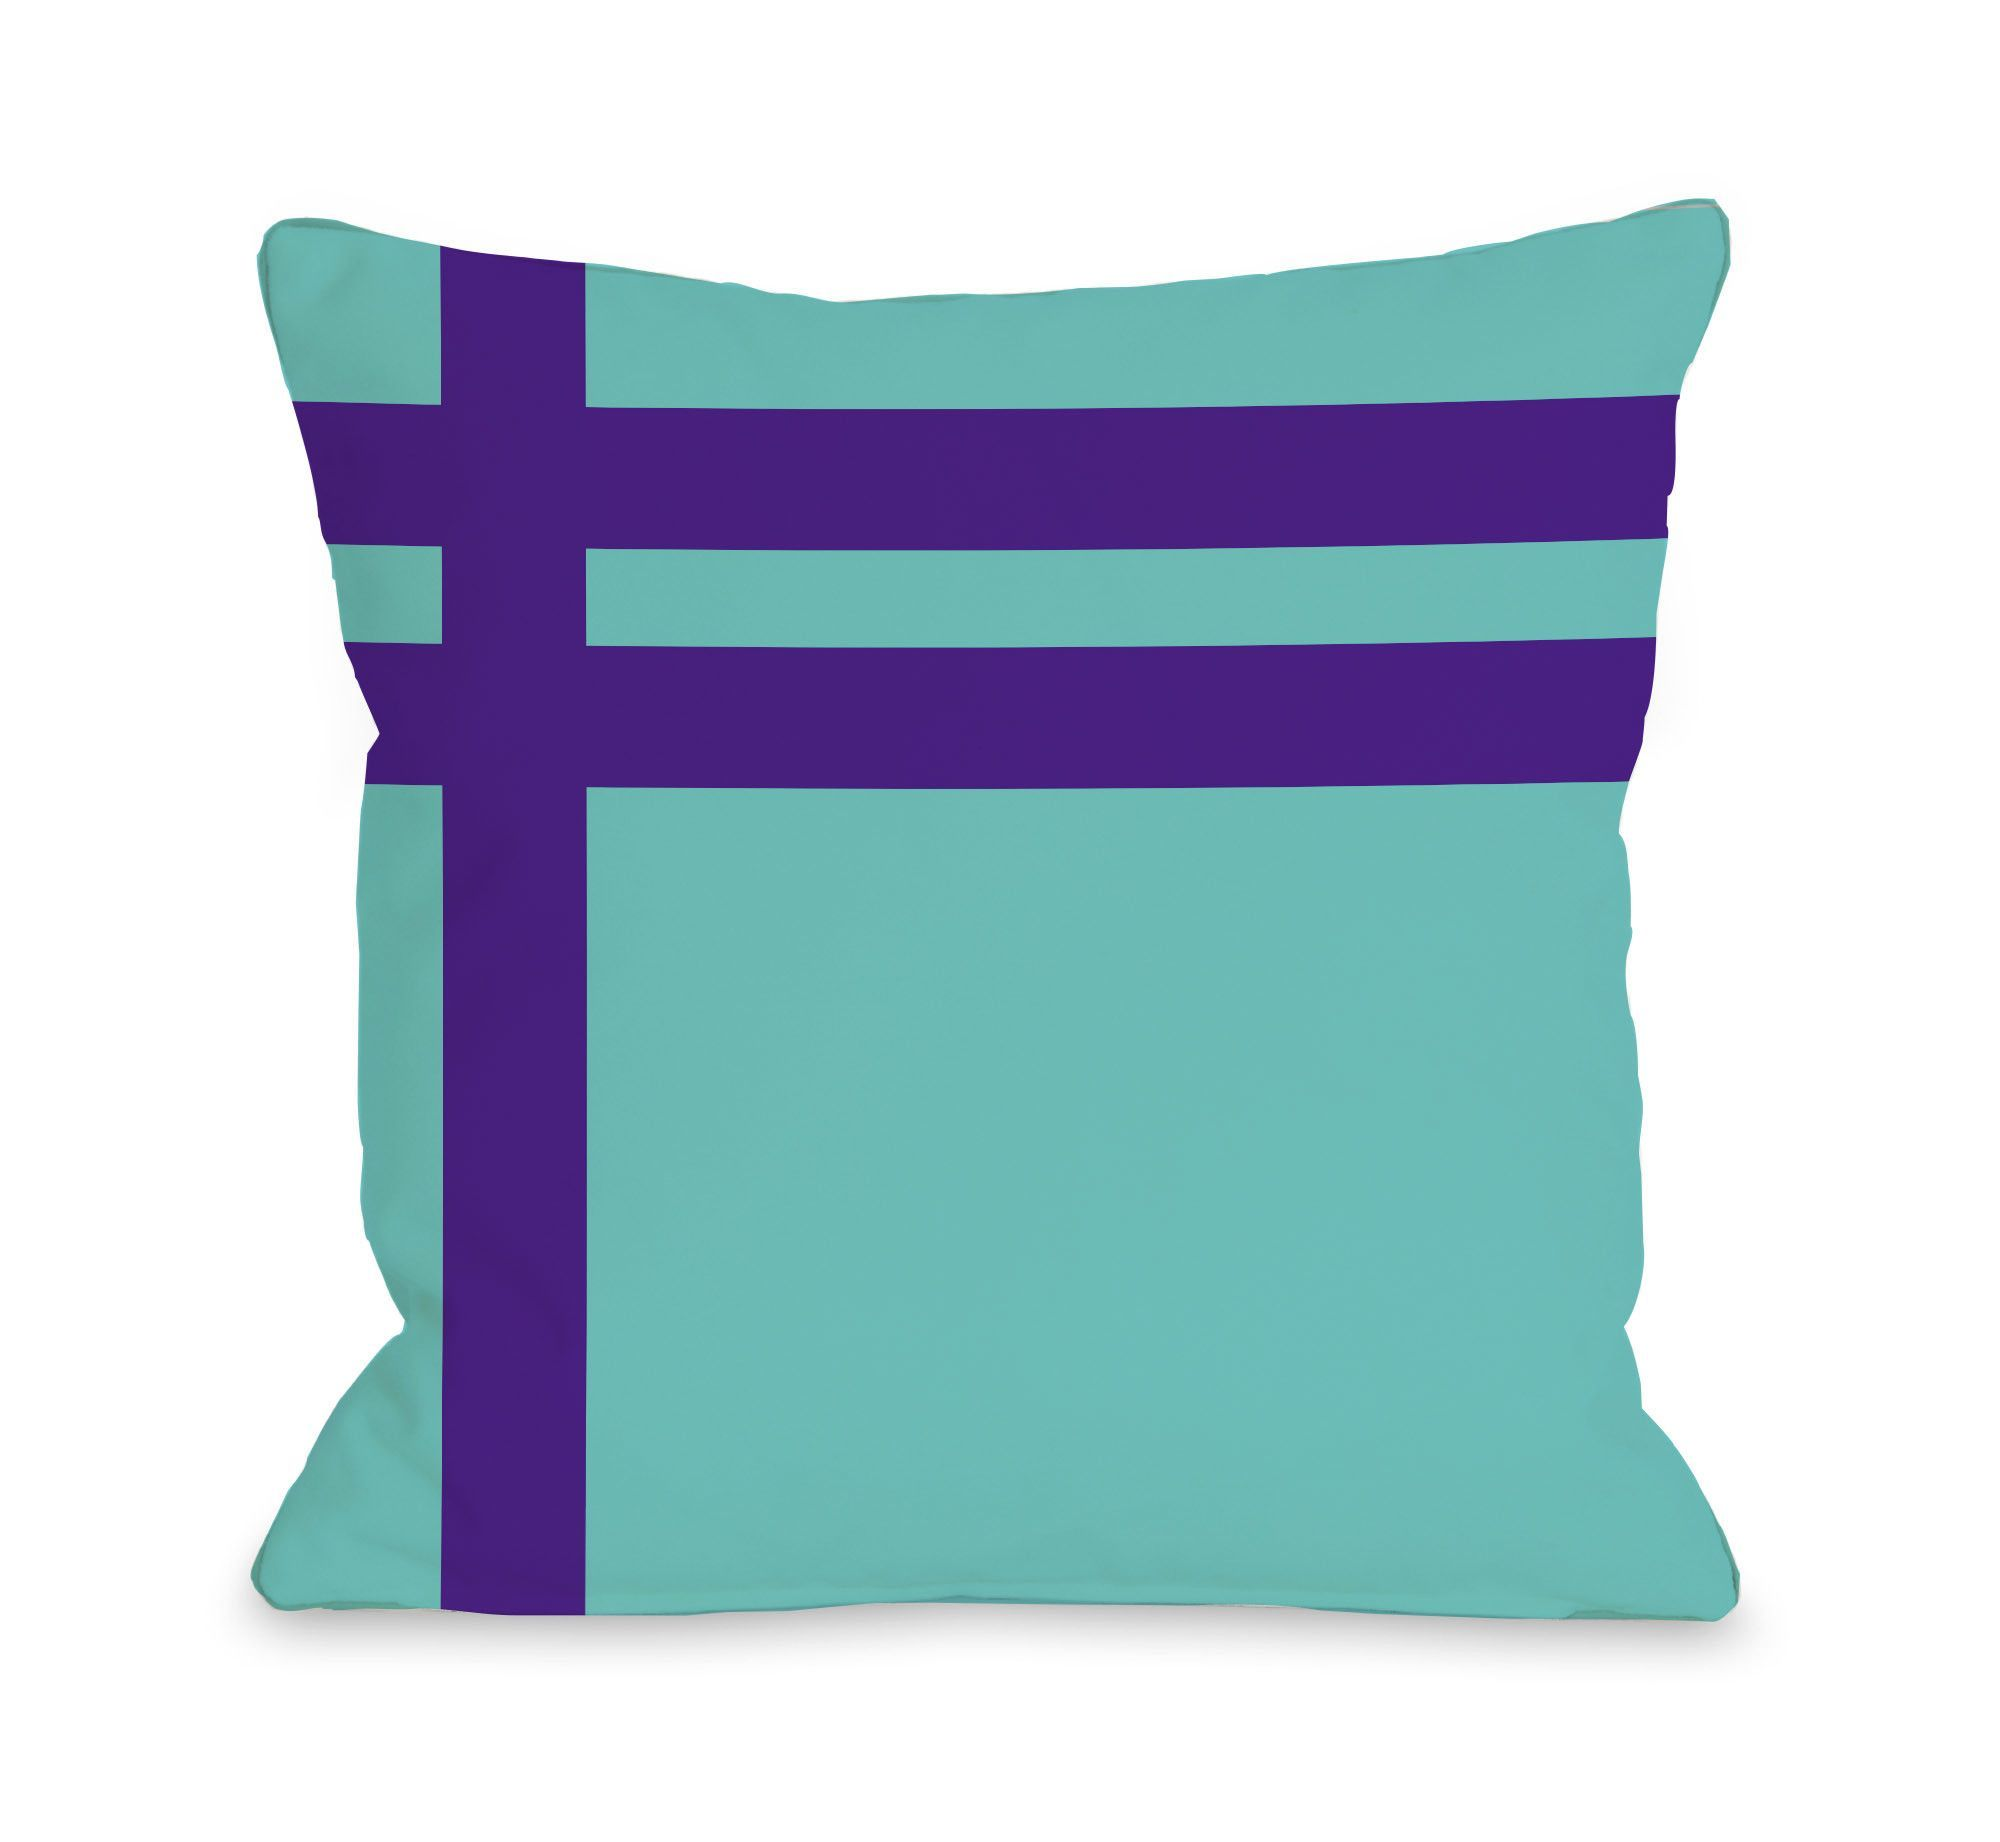 Wayfair basics wayfair basics throw pillow insert size products